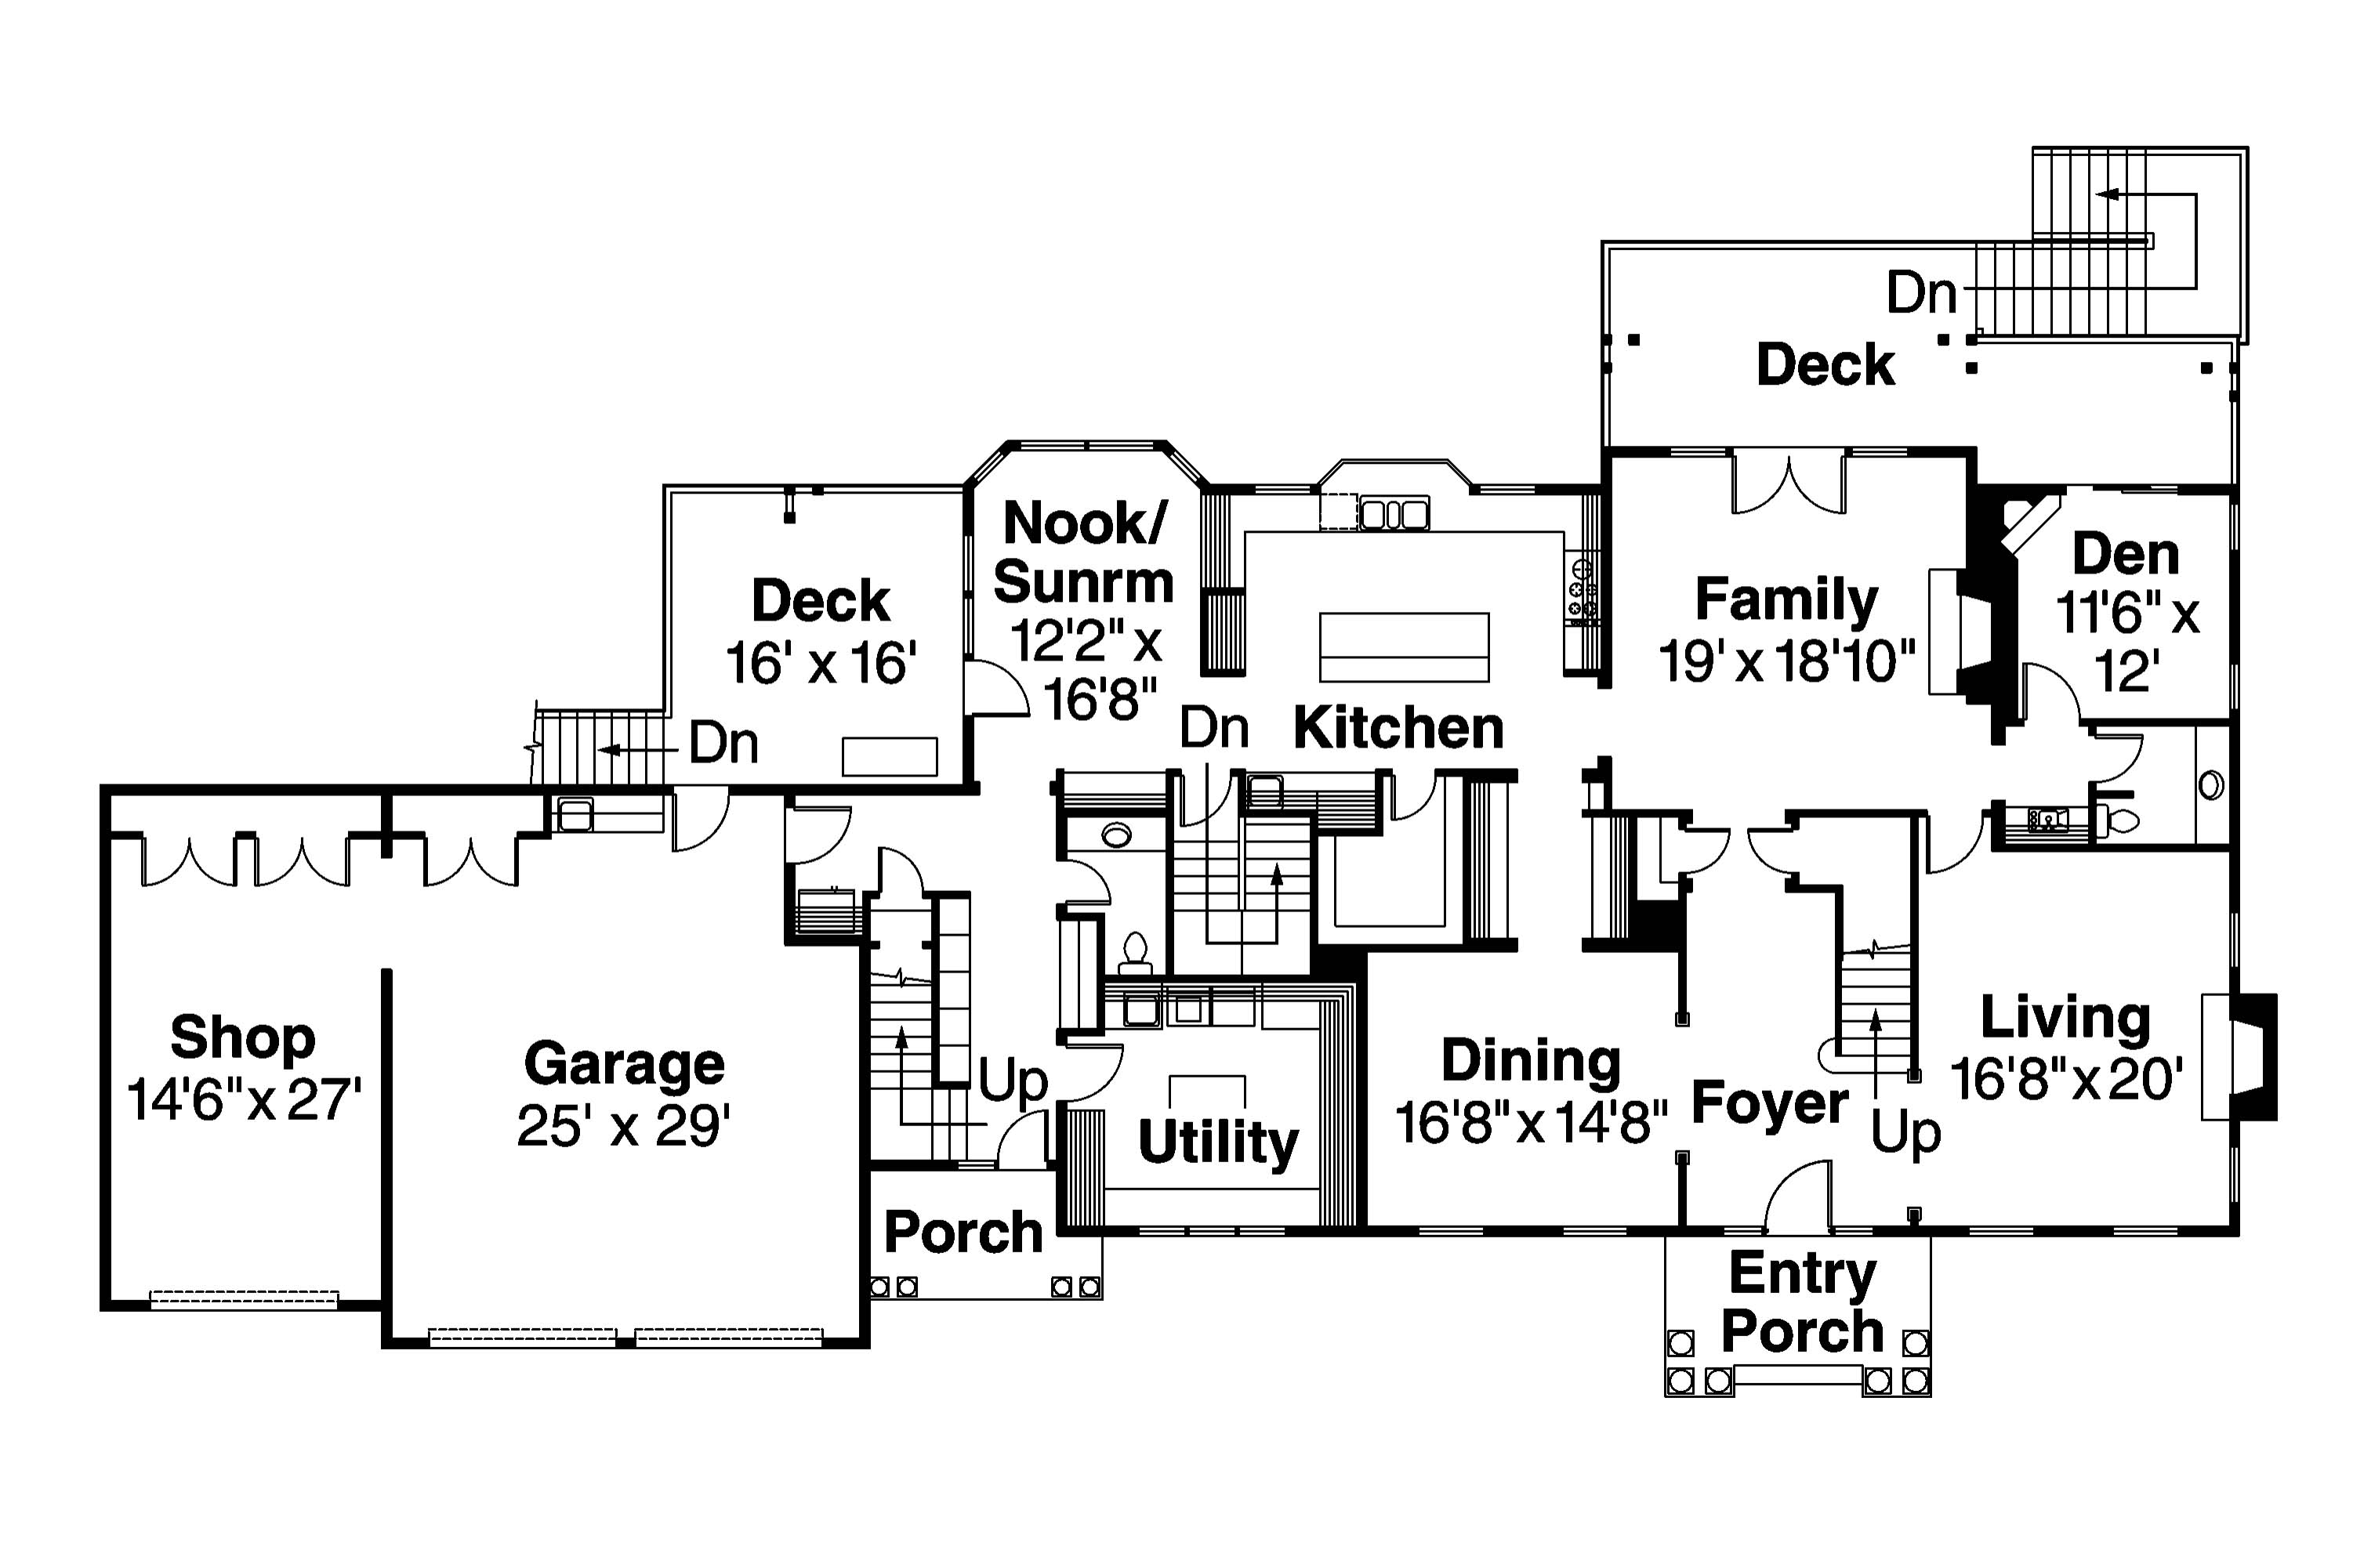 colonial_house_plan_princeton_30 497_flr1